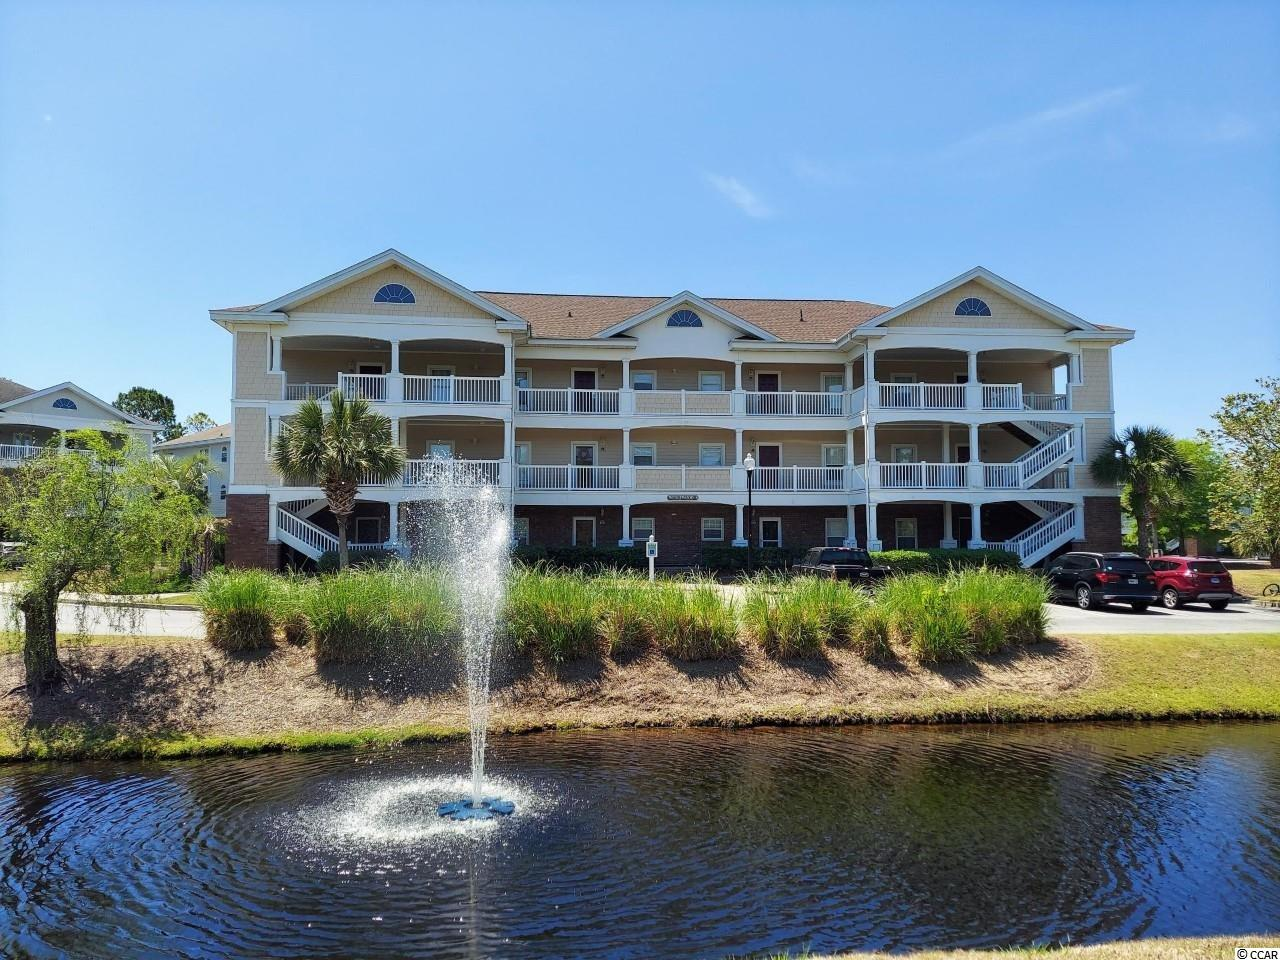 Don't miss this opportunity to buy this 1st floor, end unit condo in the beautiful Barefoot Resort Community.  This ground floor unit is just steps outside your screened porch door to the pool.  Fully furnished and ready for you to enjoy.  Wedgewood has it's own pool but you are more then welcome to use the many amenities at Barefoot Resort which include, a brand new ocean front cabana, seasonal shuttle service to and from the beach and a 15,000 sq. ft. salt water swimming pool which overlooks the waterway.